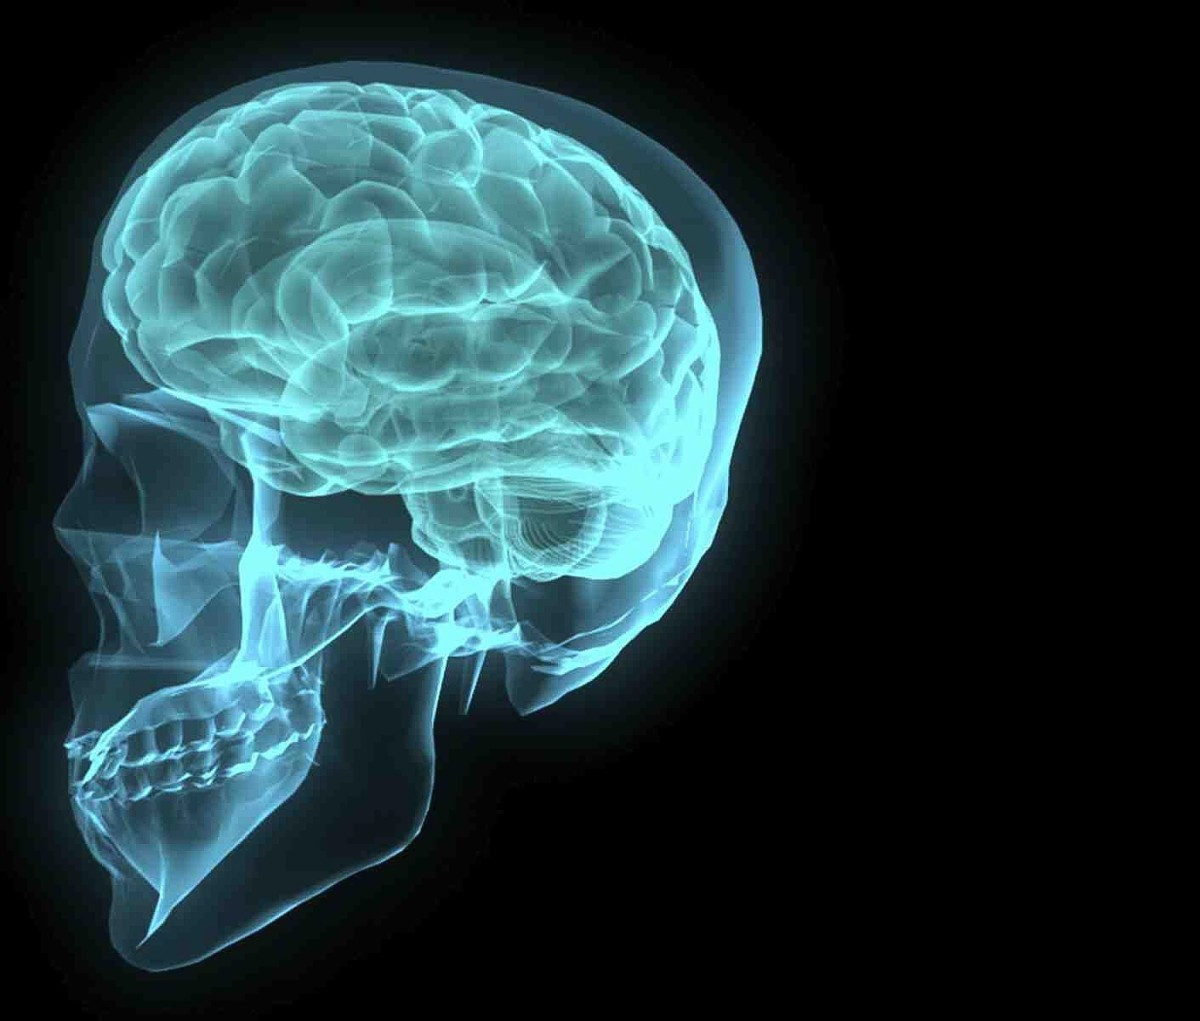 A parasite in the brain can have serious effects.